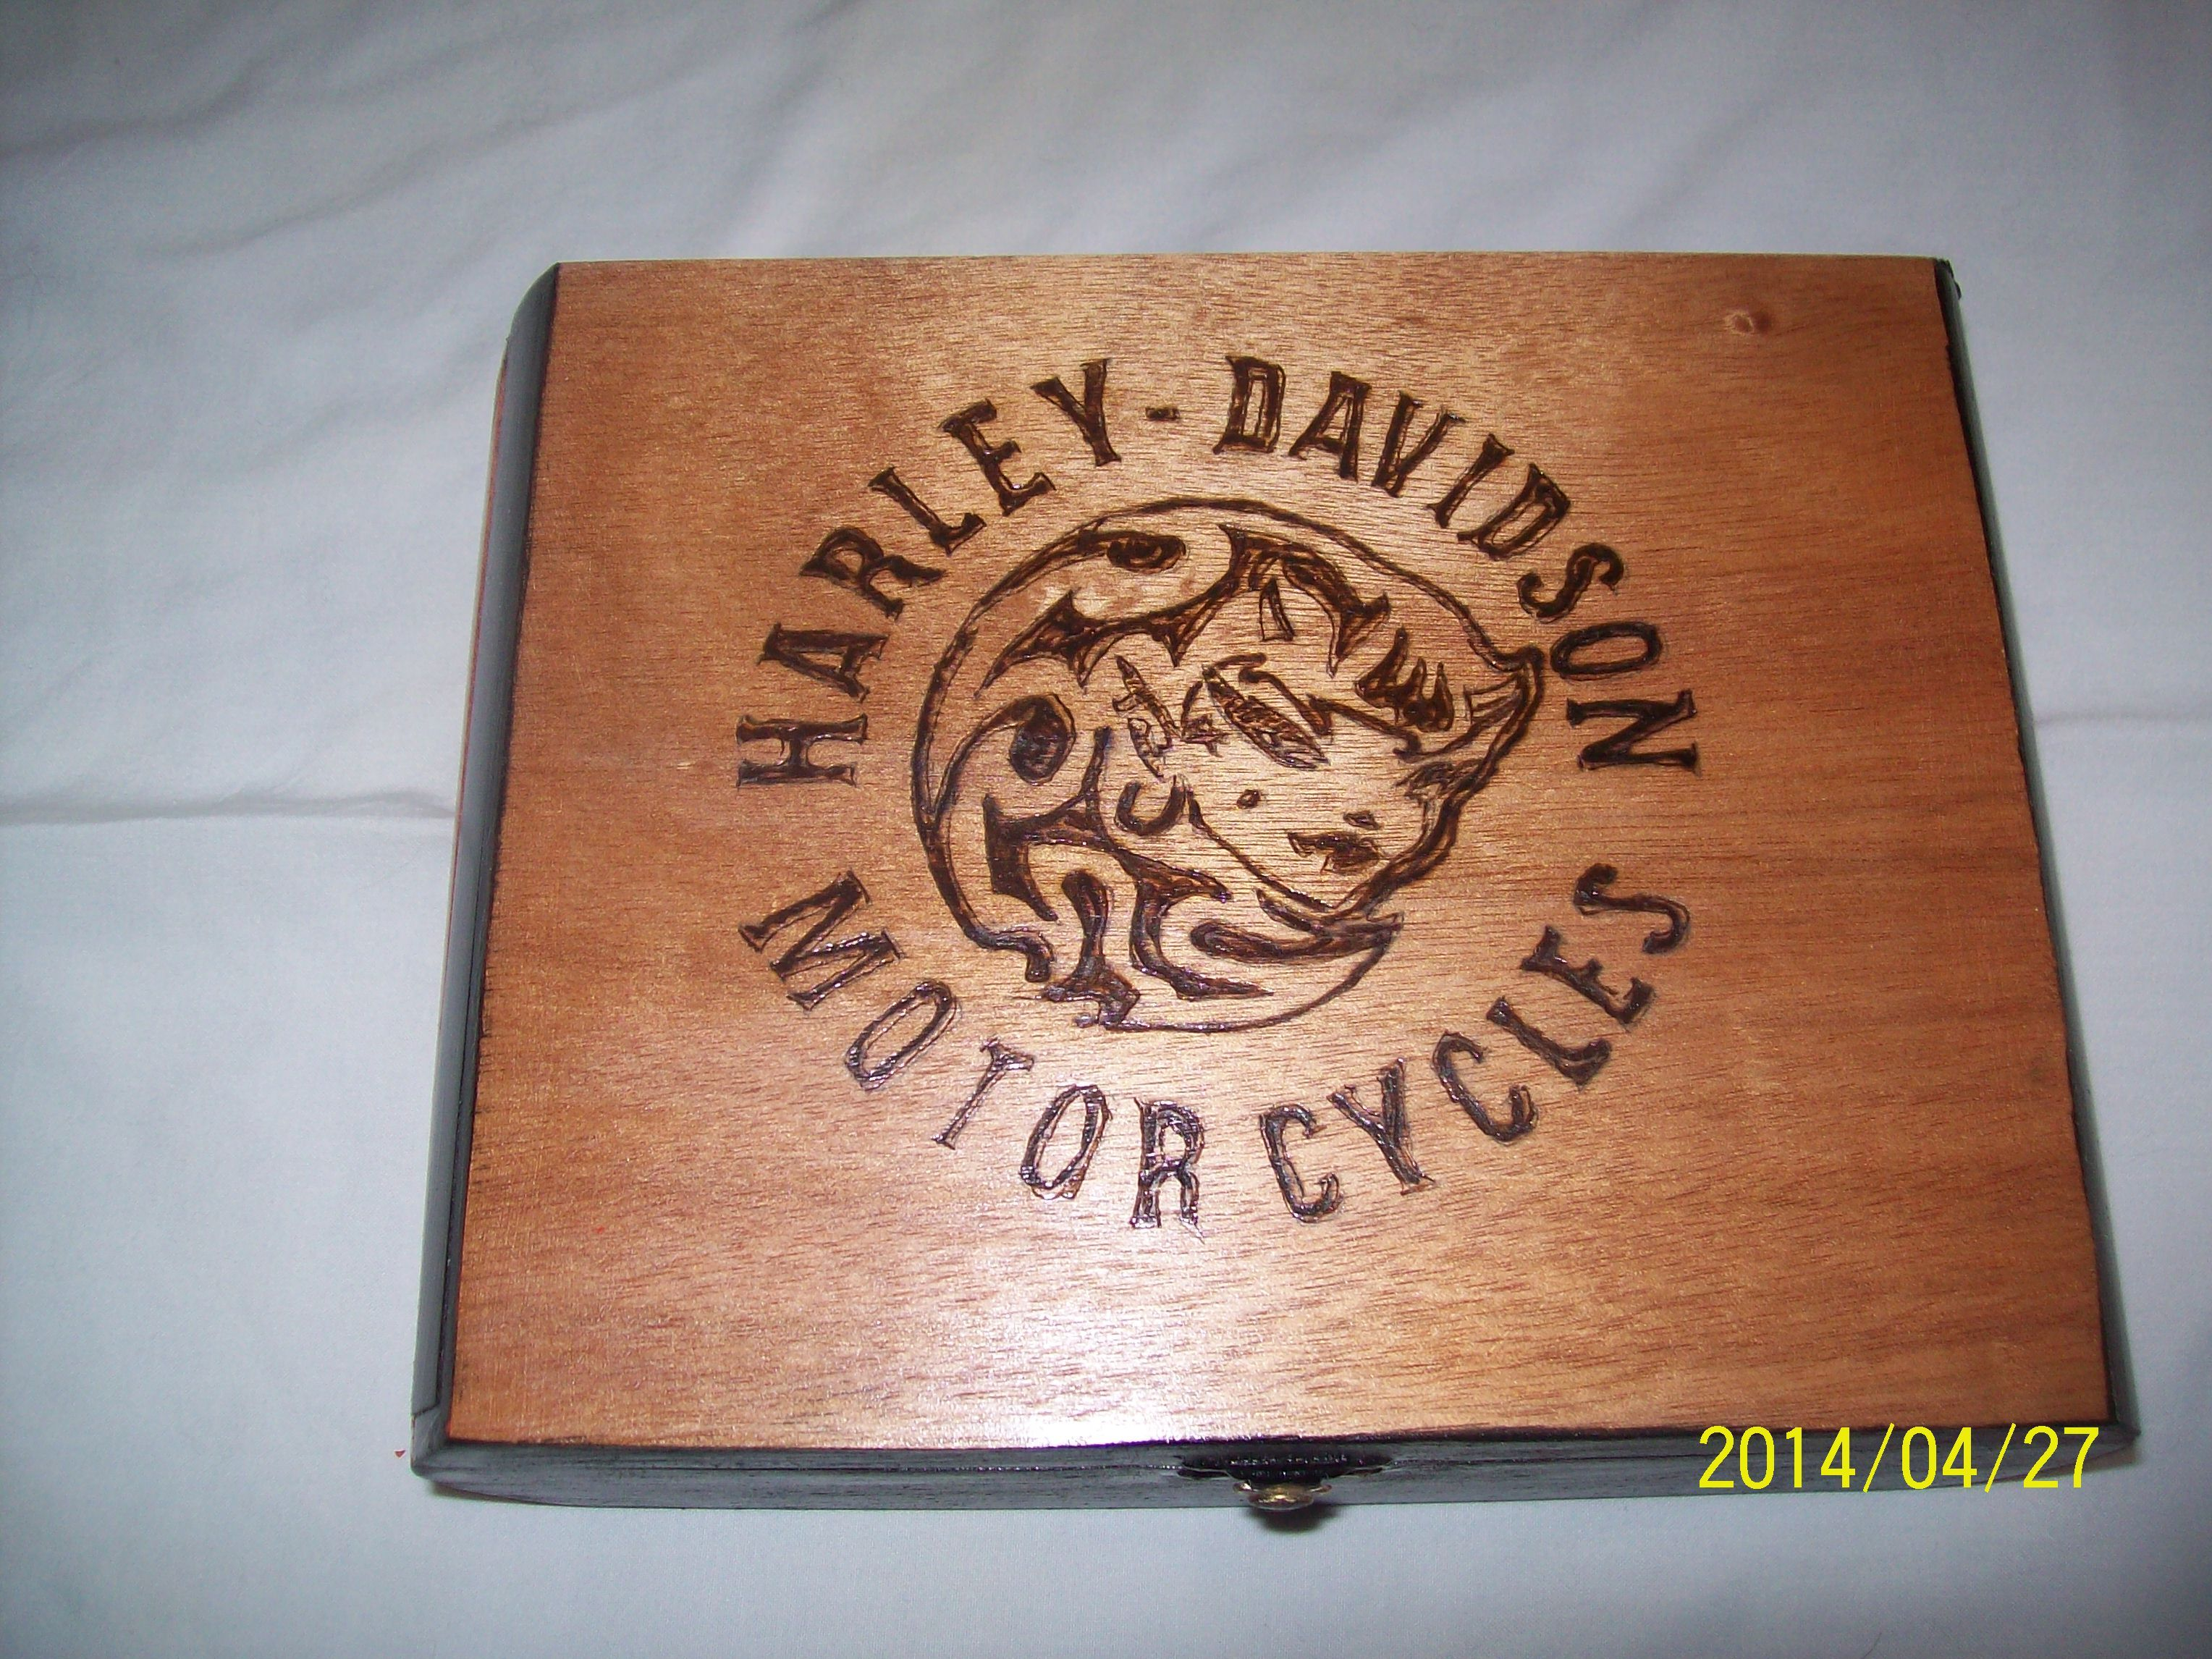 Marvelous photograph of box with a Harley Davidson theme. Wood Burning Pinterest with #975D34 color and 3056x2292 pixels